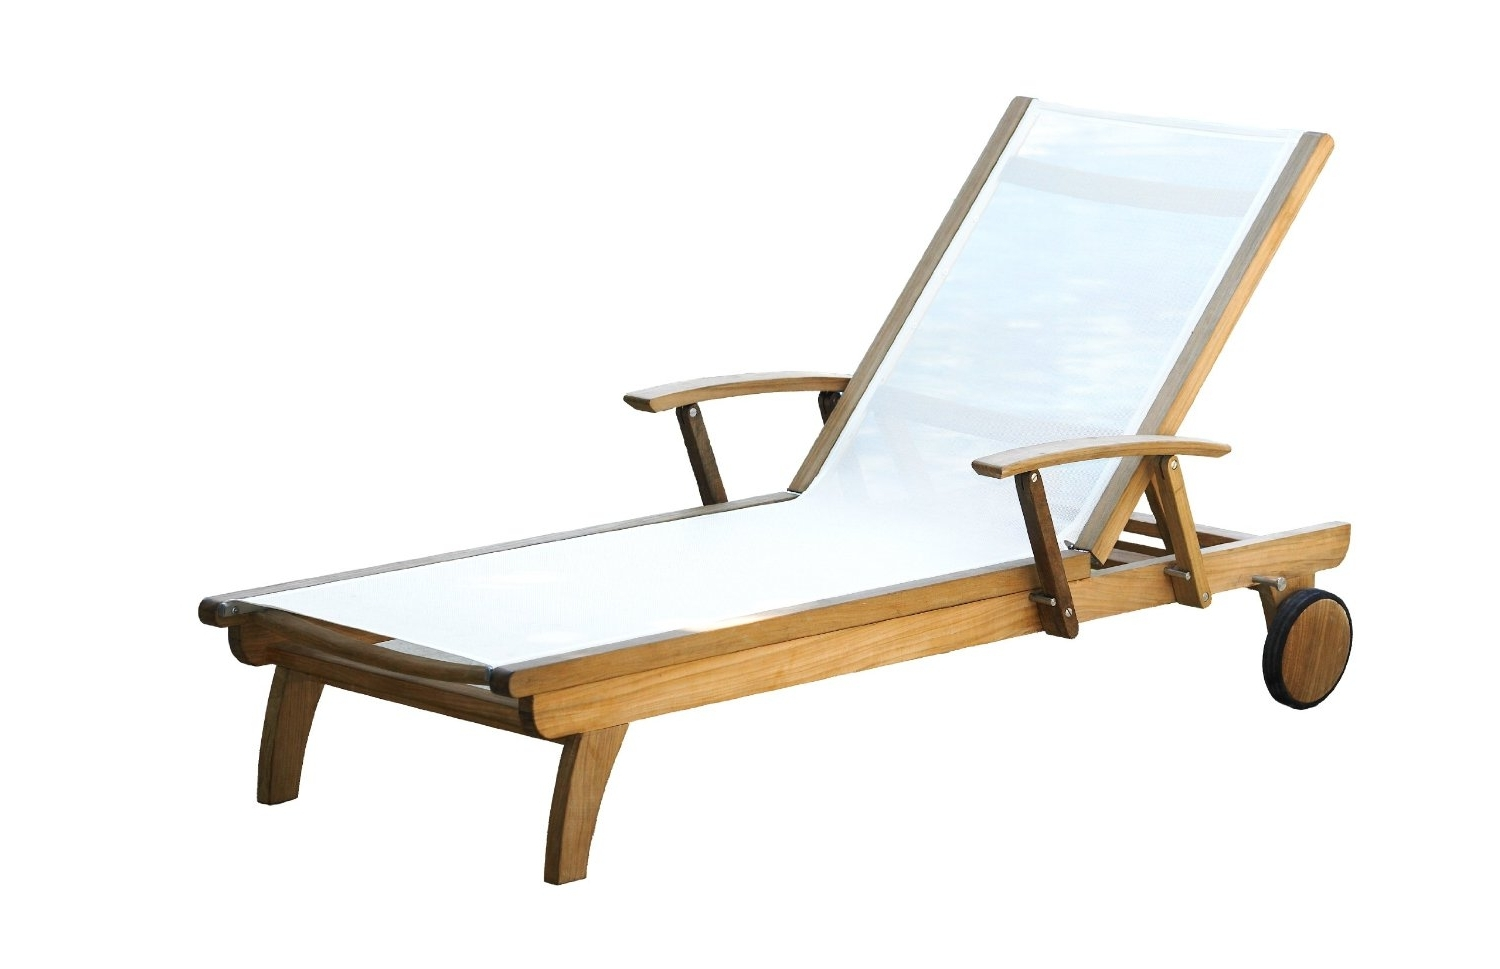 Most Recently Released Teak Chaise Lounge Chair – Teak Patio Furniture World Intended For Outdoor Chaise Lounge Chairs With Arms (View 5 of 15)